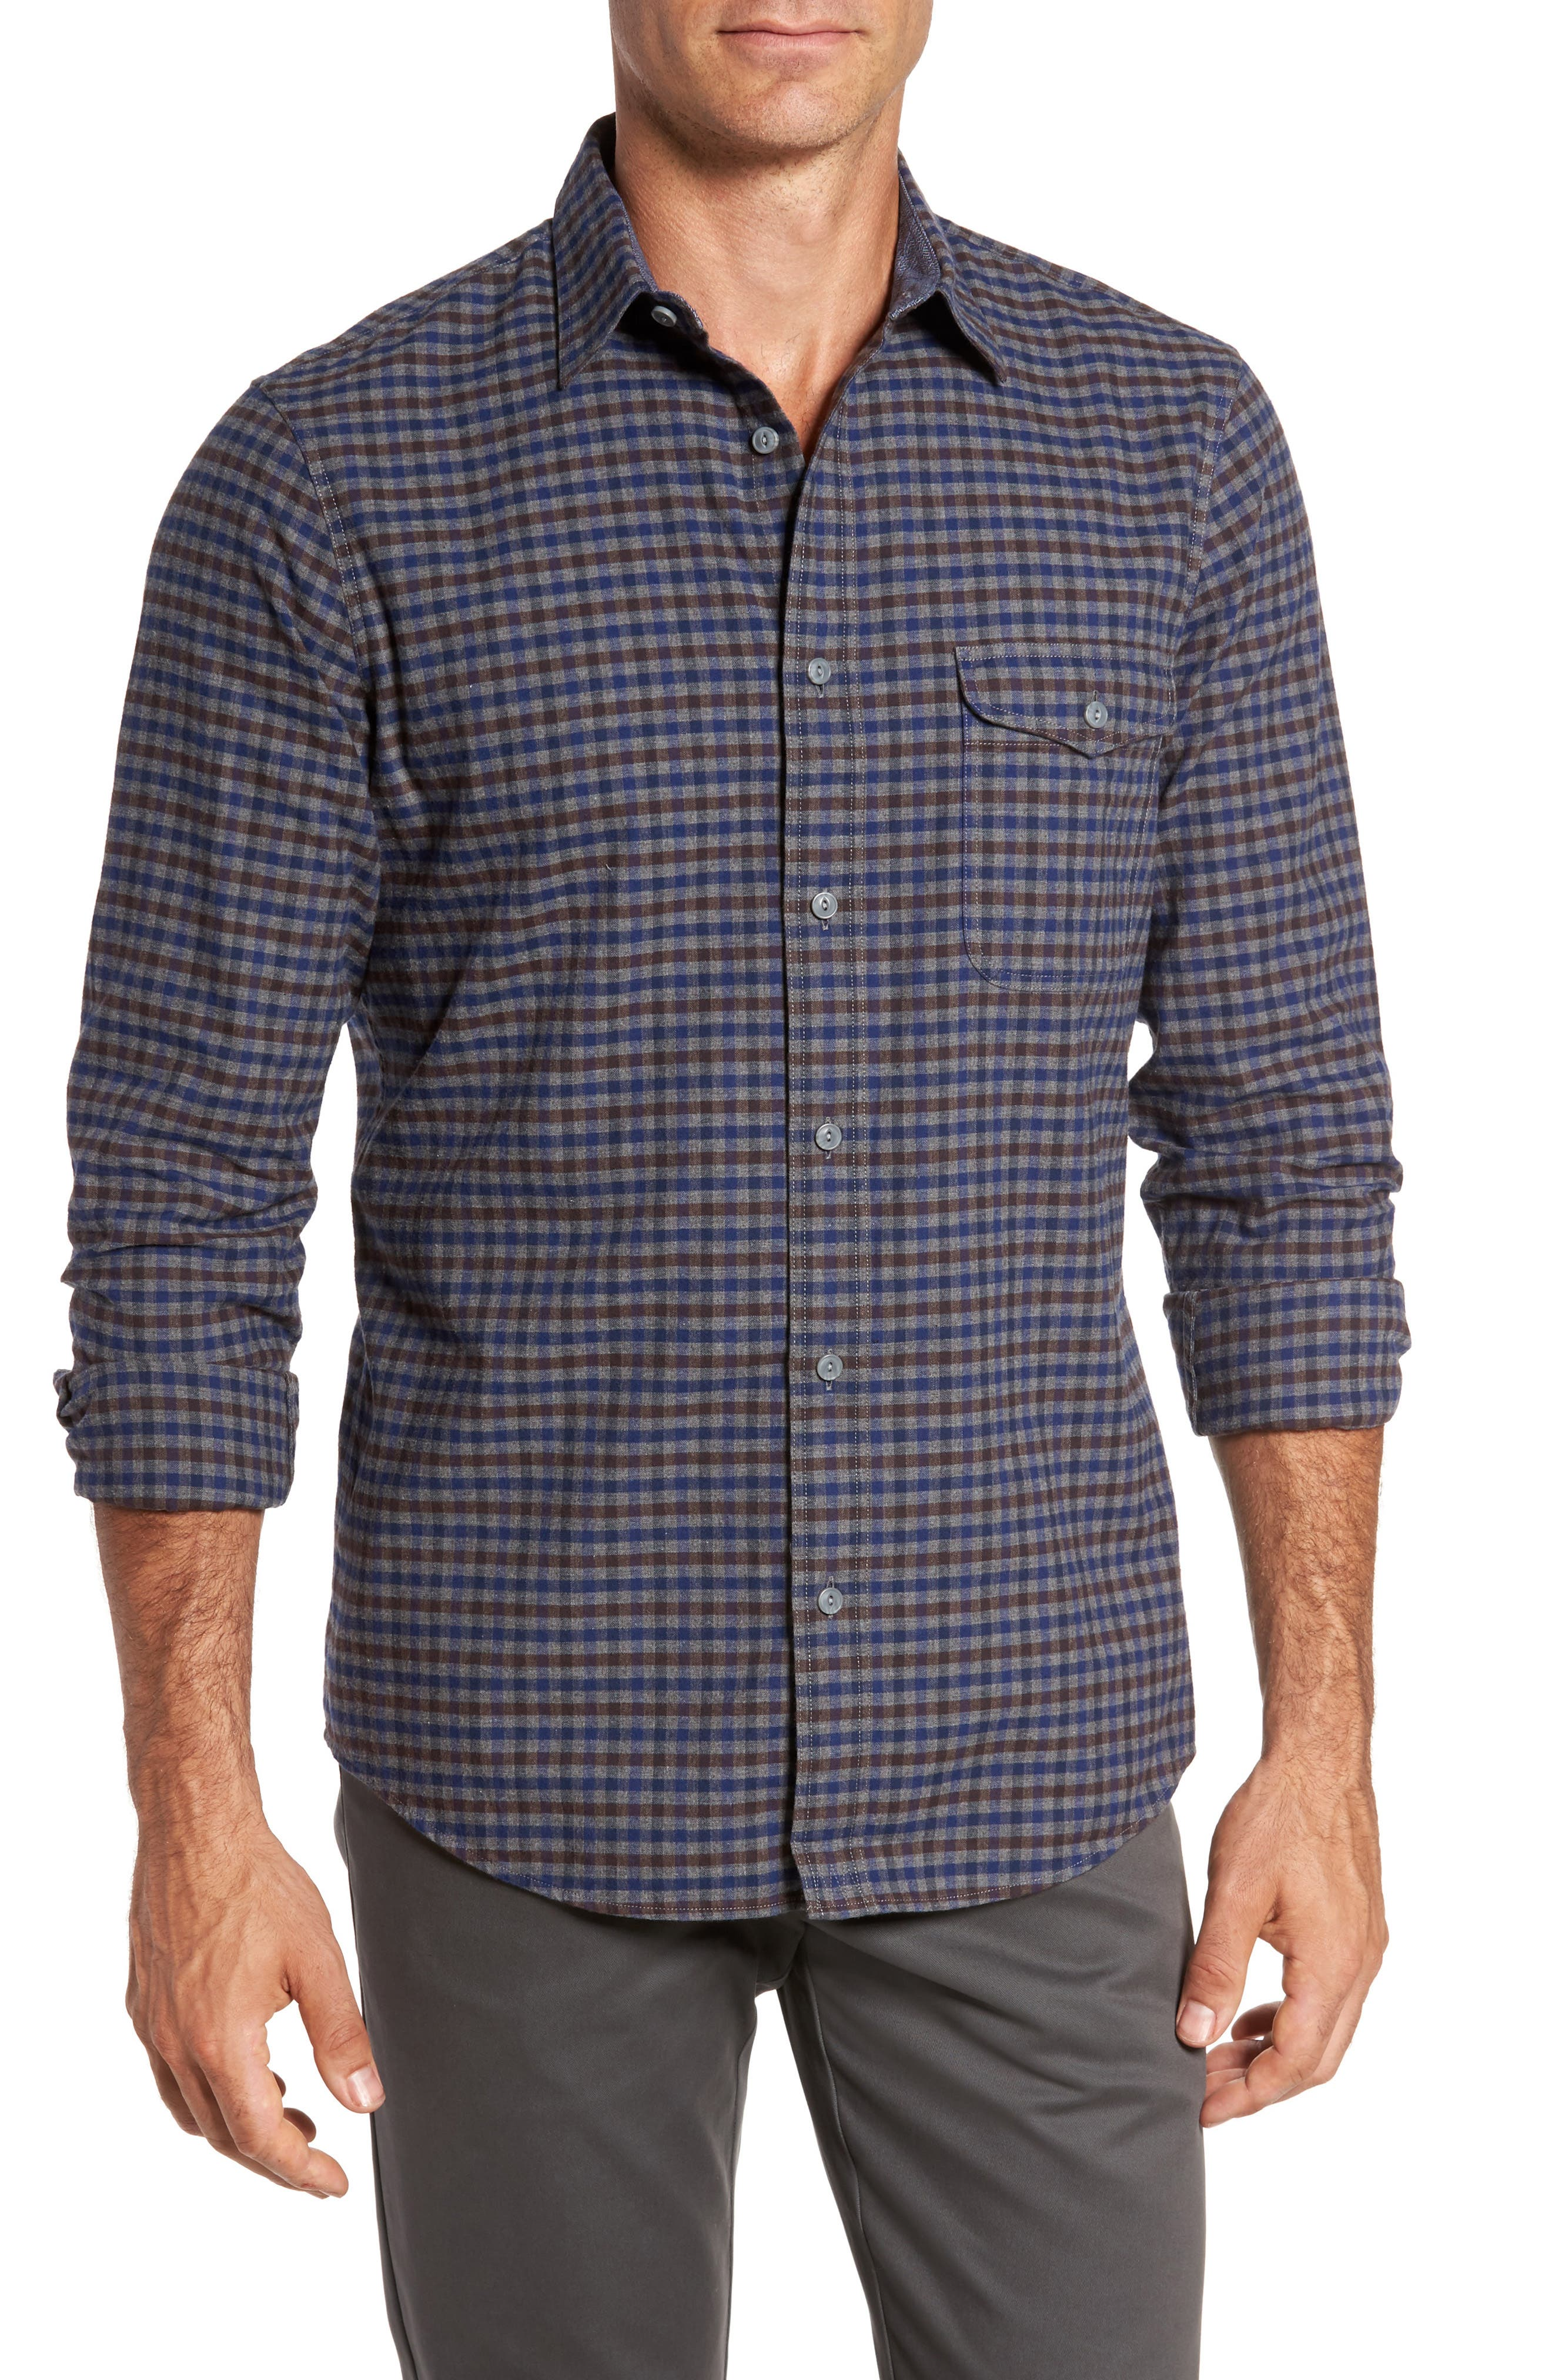 Nordstrom Men's Shop Regular Fit Lumber Check Flannel Shirt